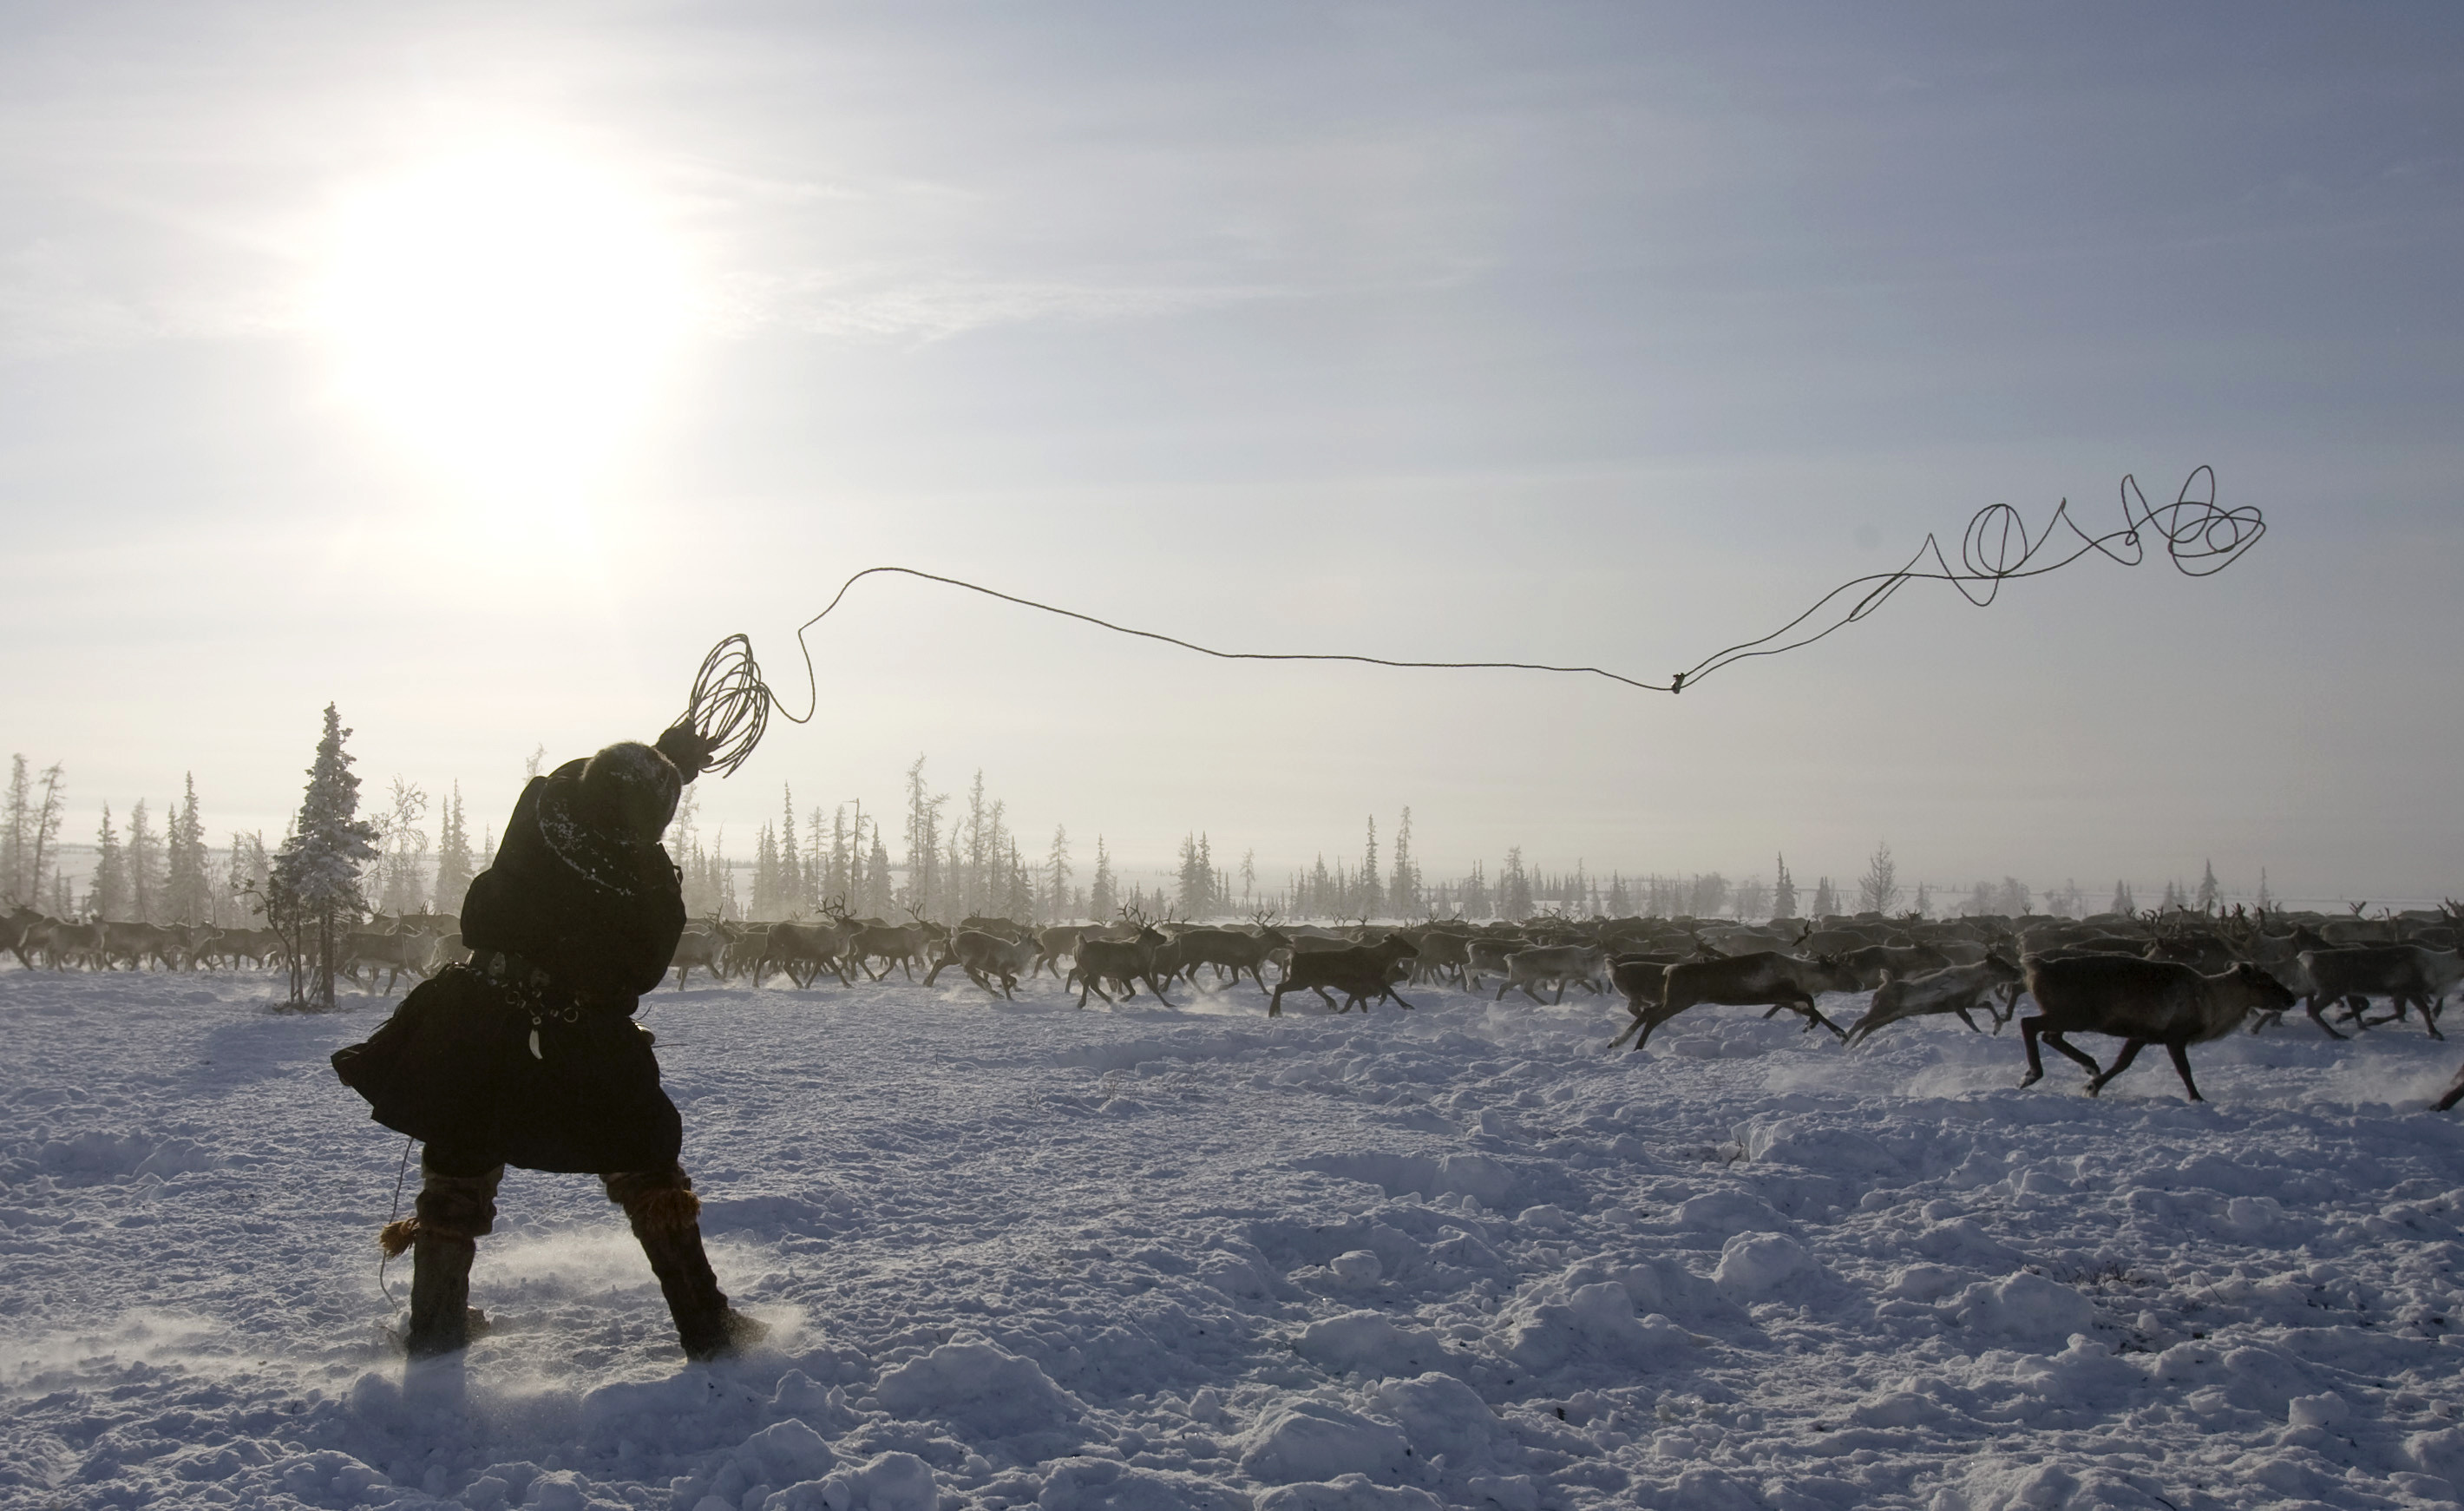 A deer-keeper throws his lasso in the Tundra region near the village of Kharsaim, some 2,000 km northeast of Moscow, February 29, 2008.  REUTERS/Vasily Fedosenko